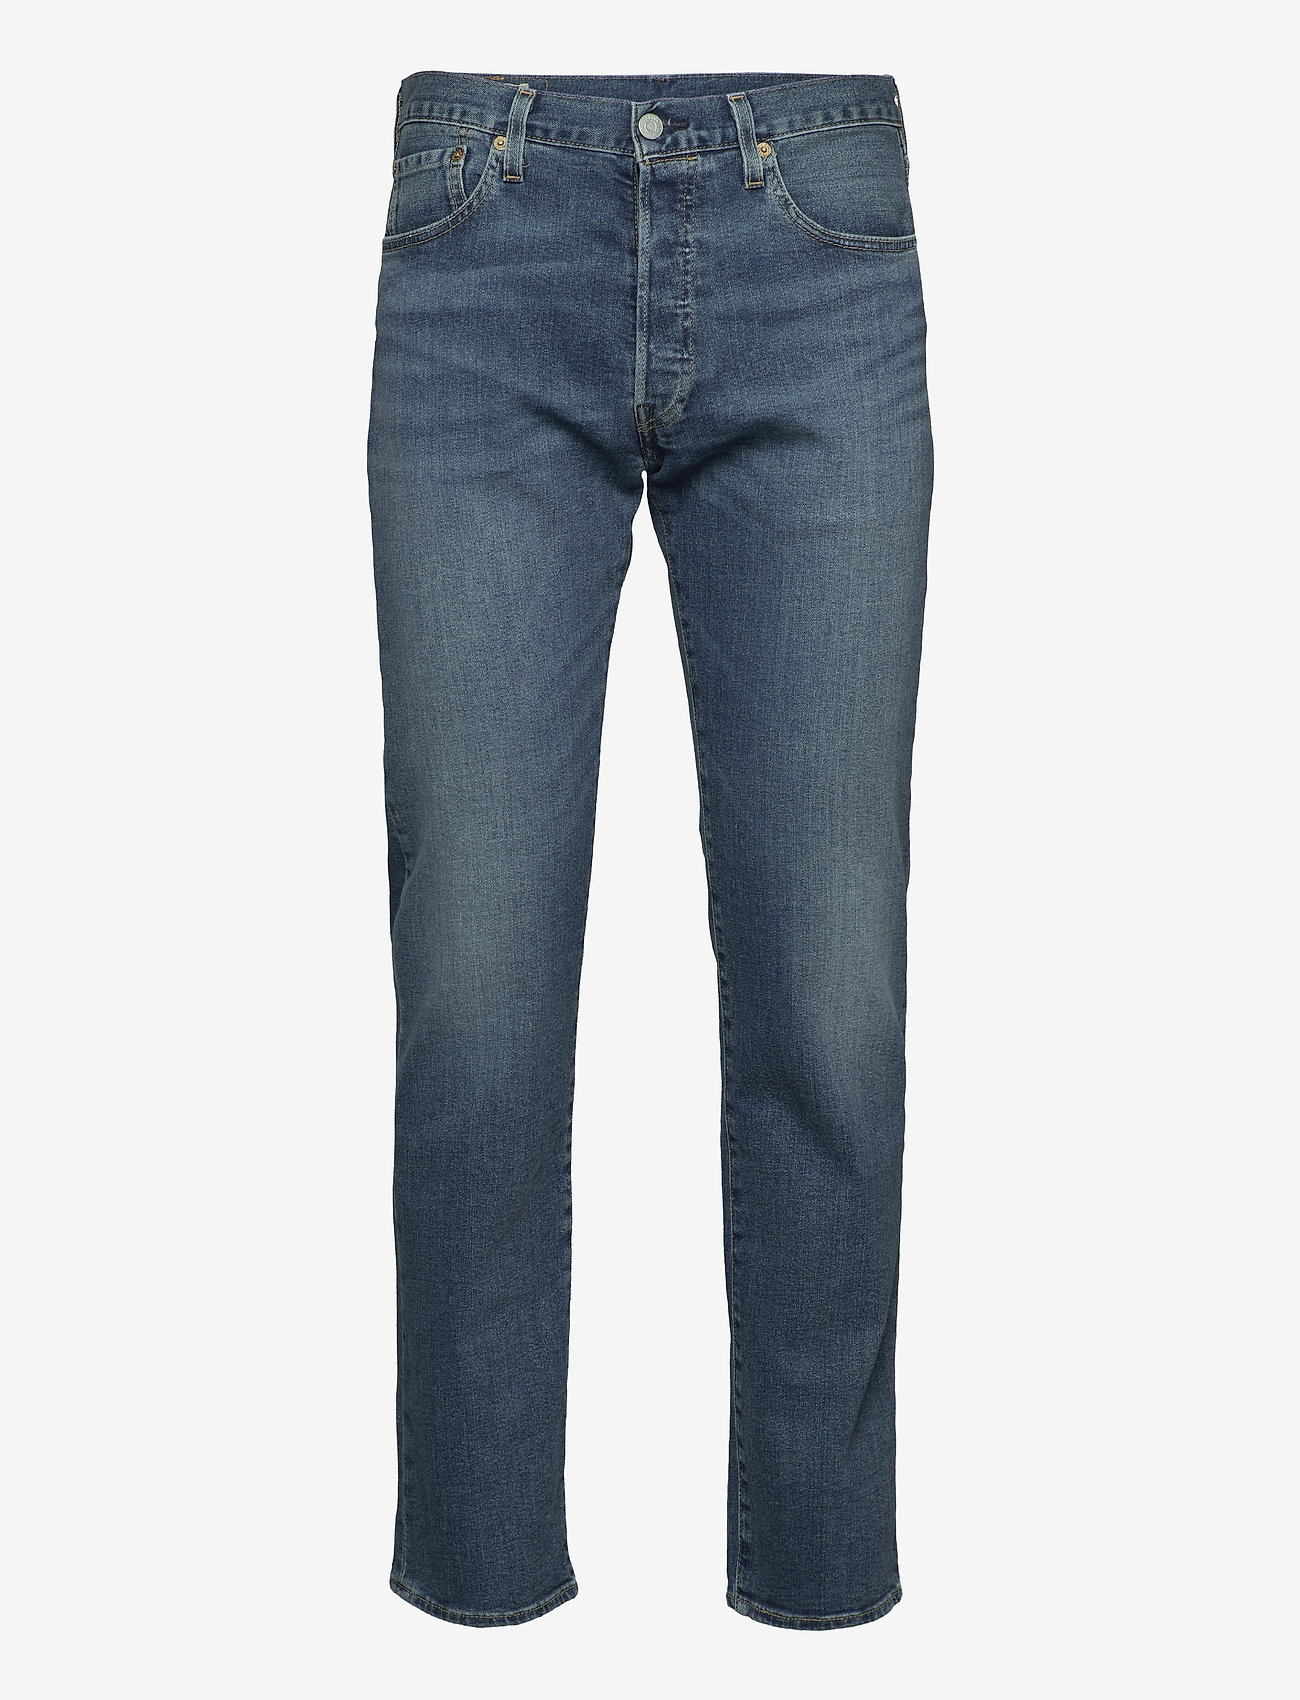 LEVI´S Men - 501 LEVISORIGINAL UBBLES - relaxed jeans - med indigo - worn in - 0